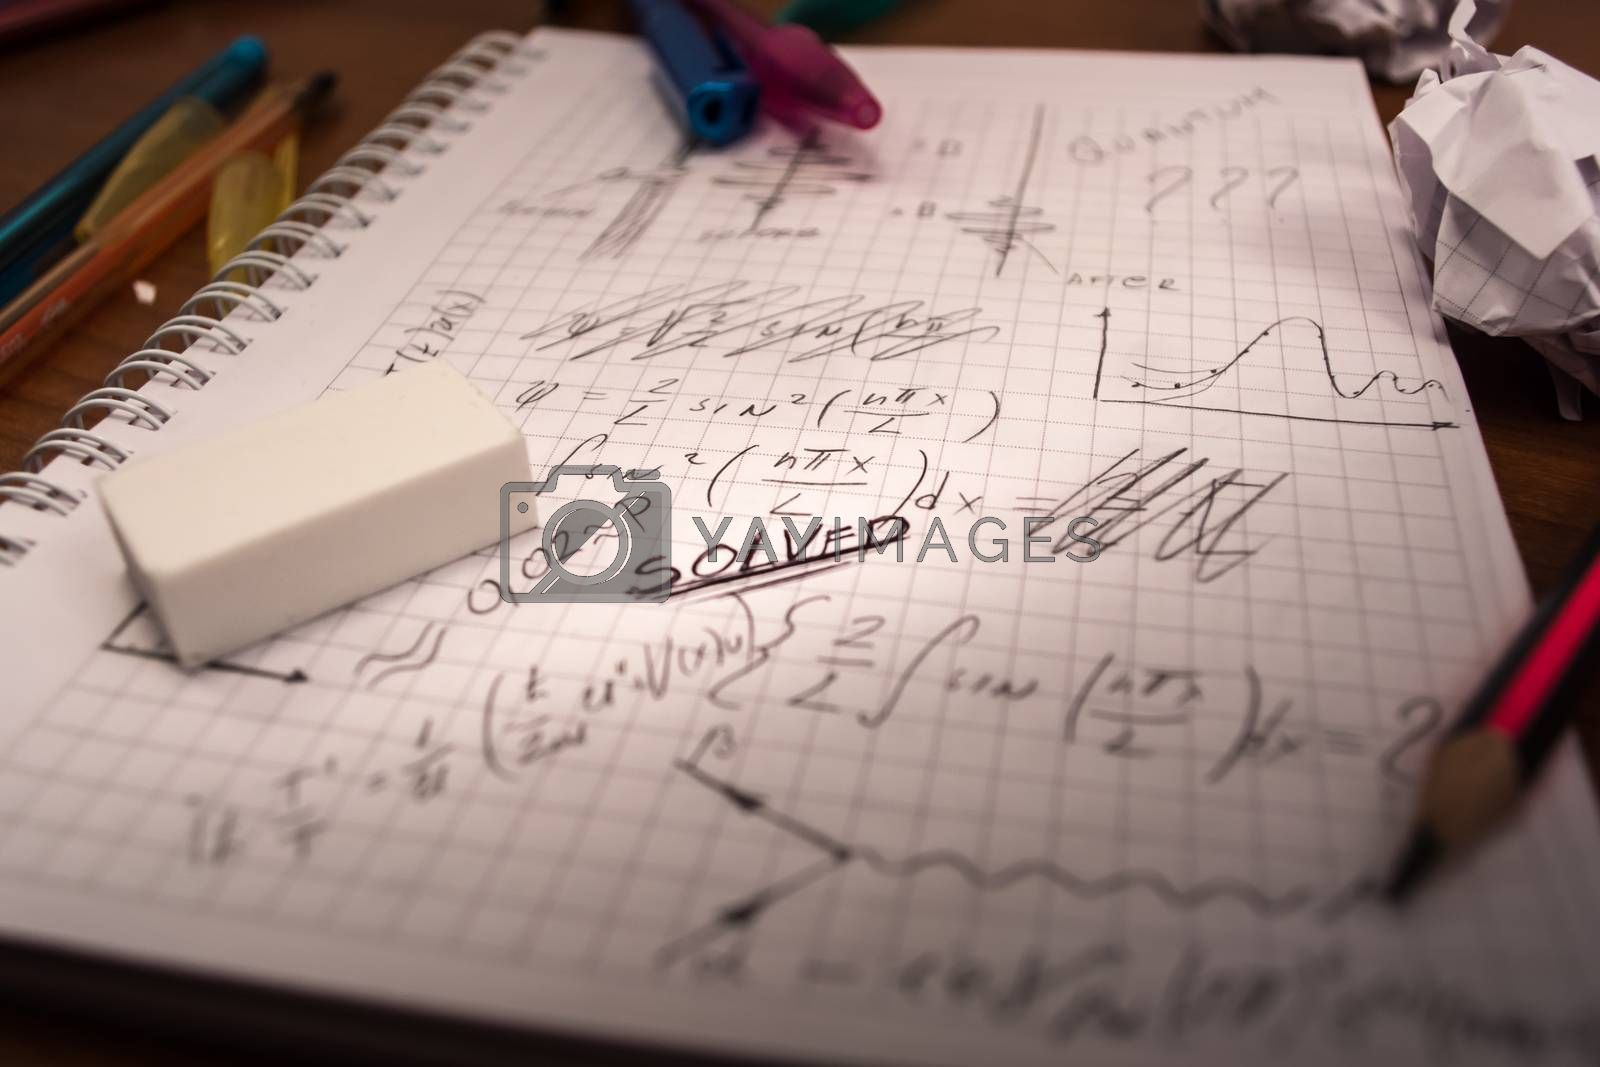 Notebook full of written formulas with pencil and eraser on top of it. Crumpled paper all around the table